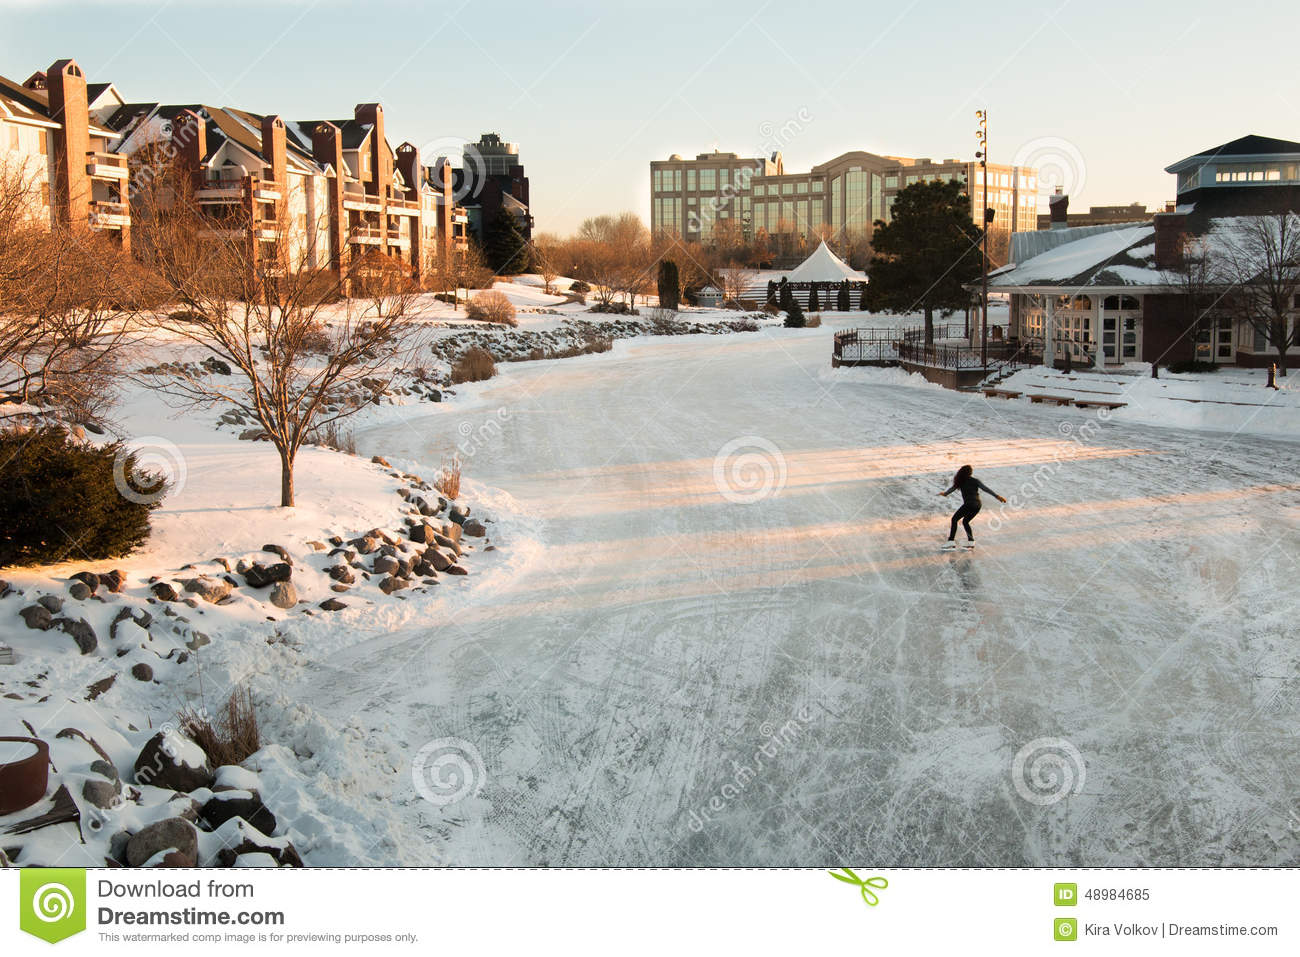 Lone figure skater on a frozen lake at early evening